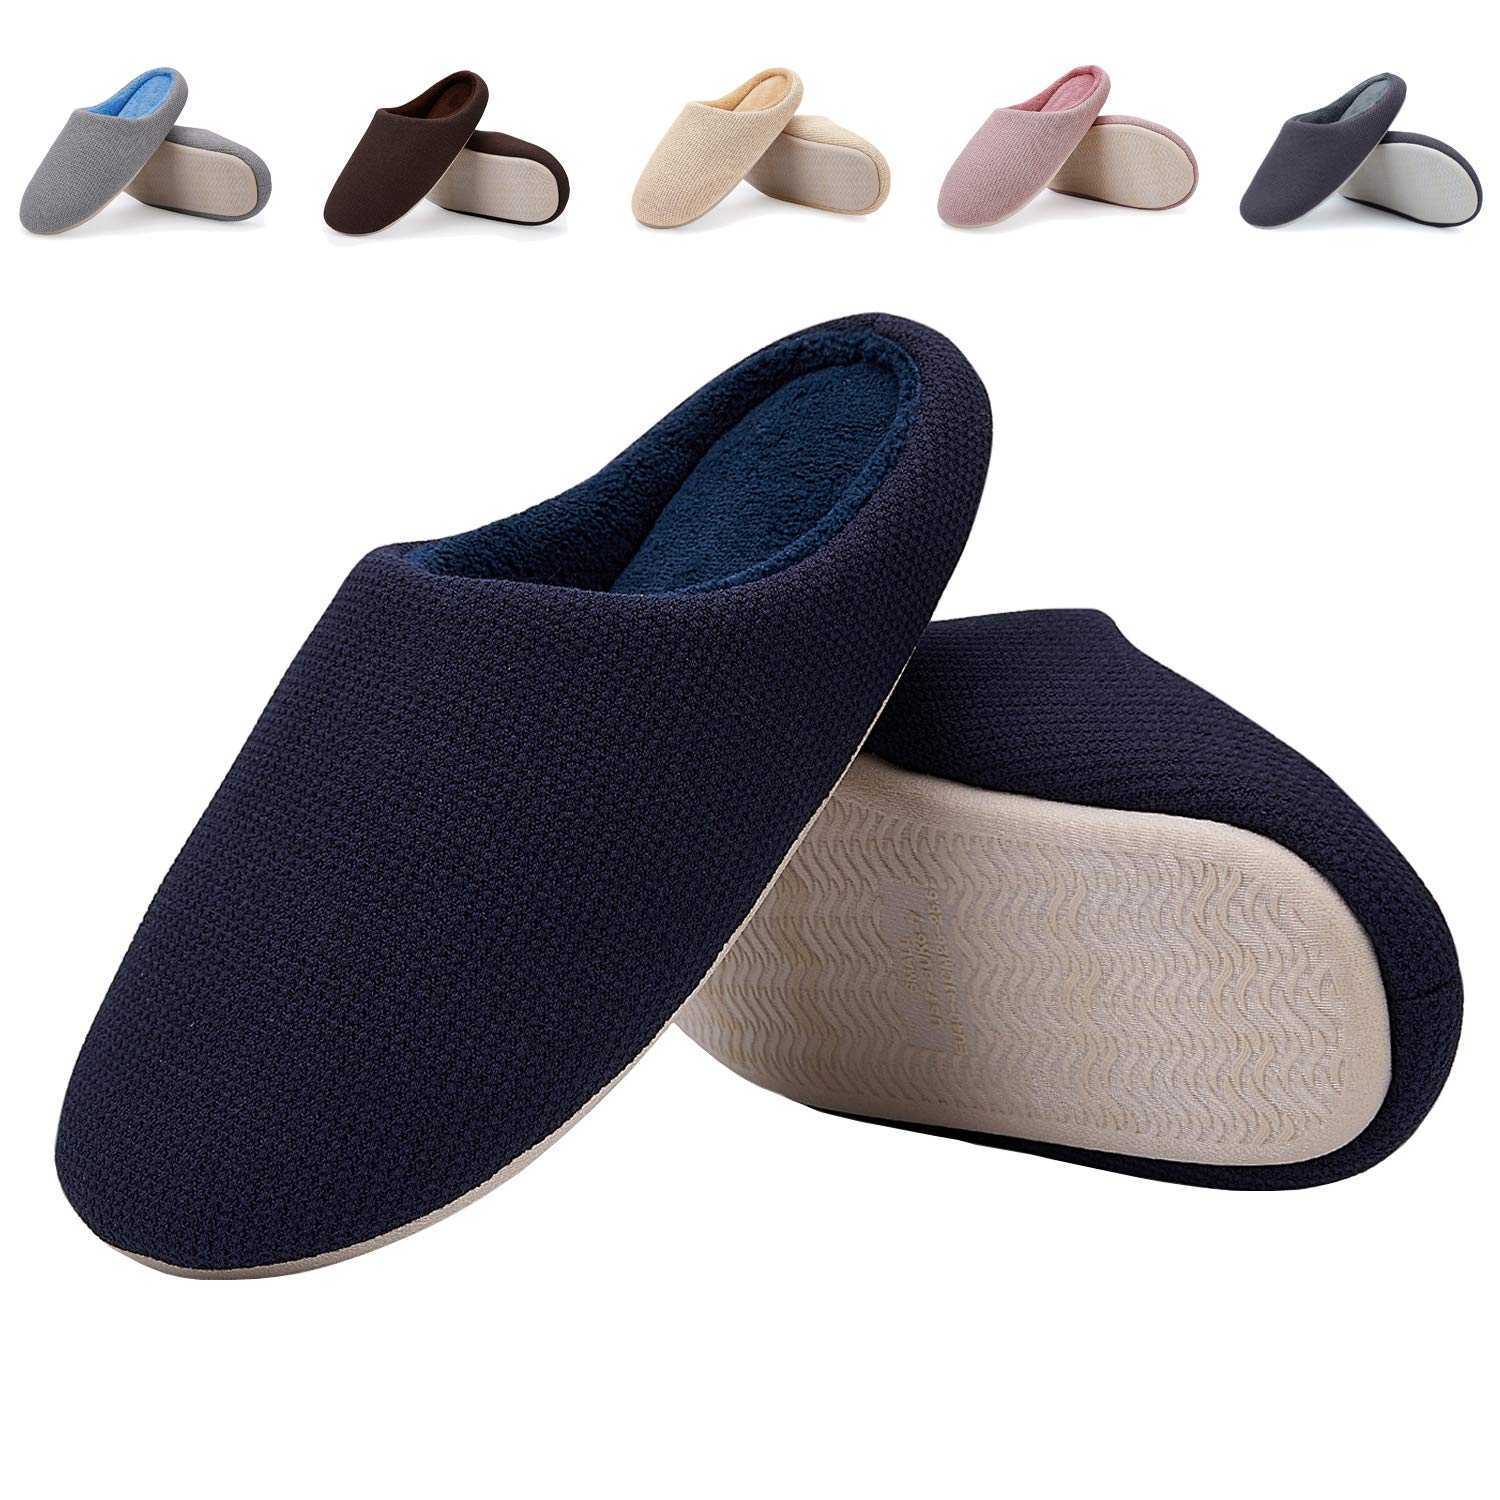 EASTSURE Men Indoor Slippers Memory Foam House Shoes with Anti-Slip Sole,Navy 42-43